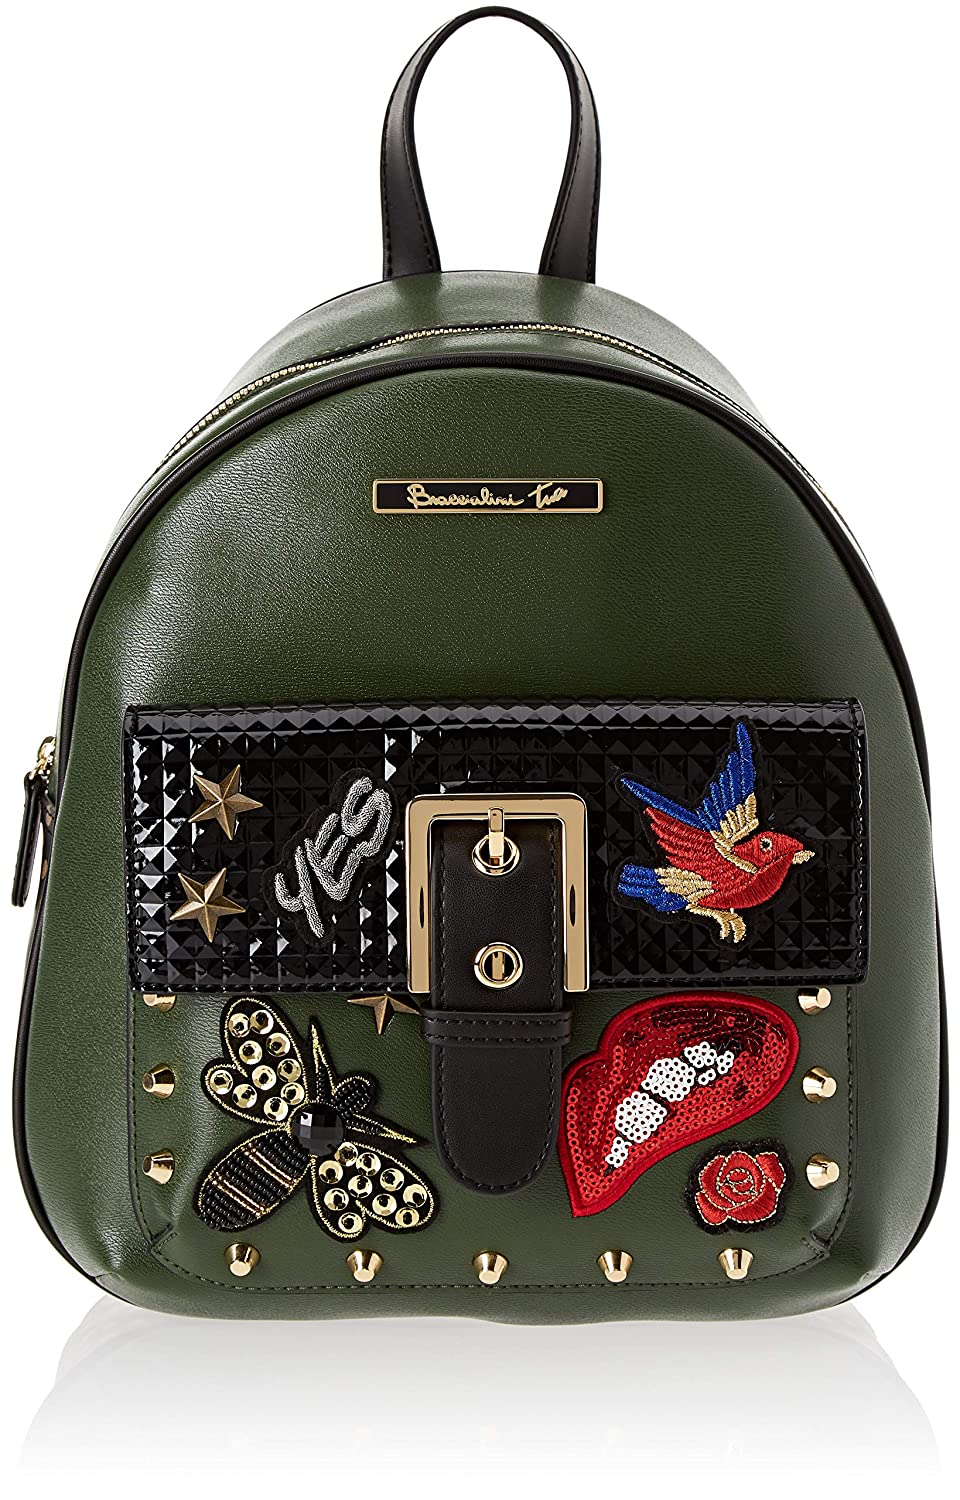 Rock, Womens Backpack Handbag, Green (Verde/Salvia), 15x30x25 cm (W x H L)